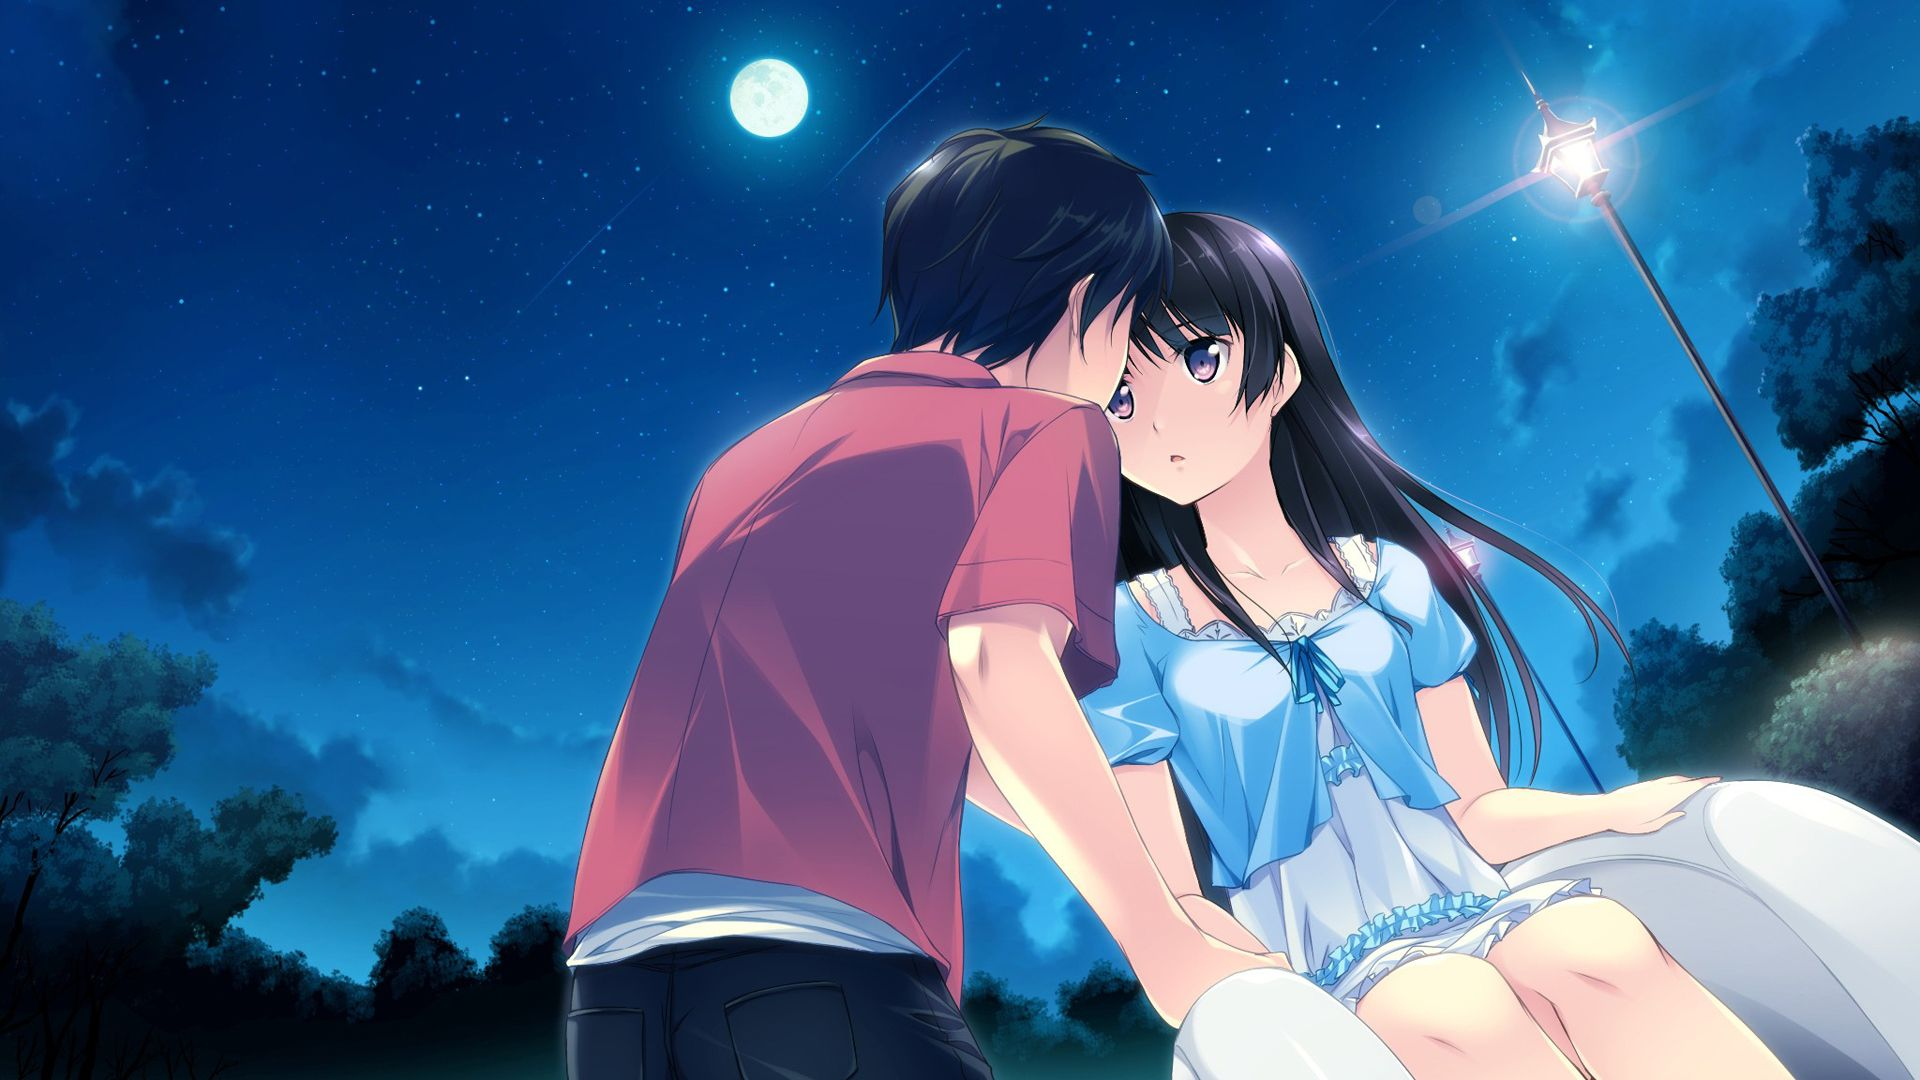 Animated Love couple Hd Wallpaper : Download Valentines Anime Wallpaper 1920x1080 Full HD ...